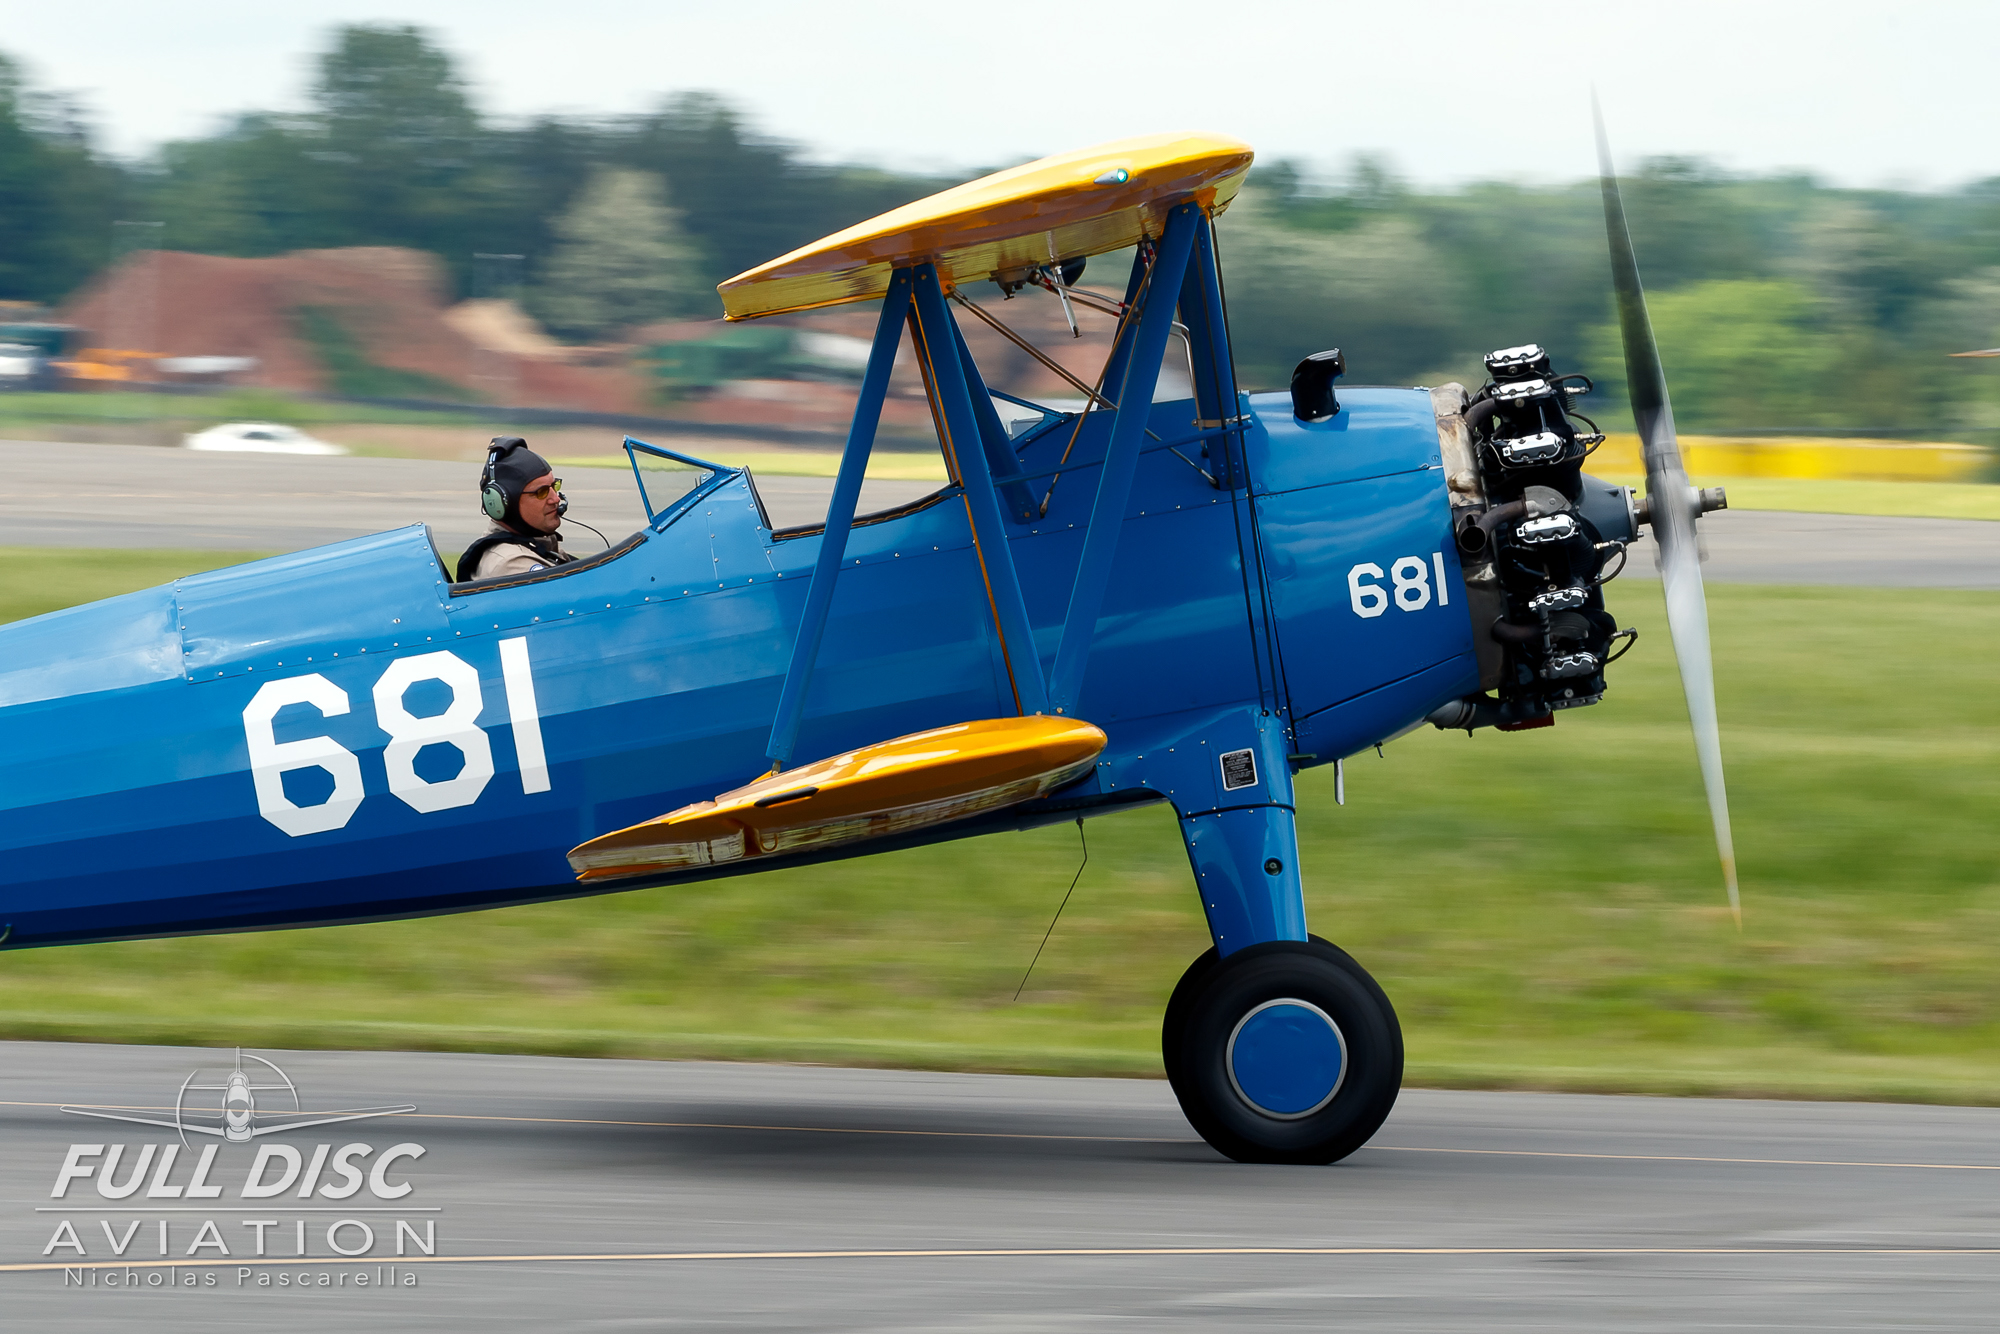 flyingcircus_taxi_stearman__aviation__nickpascarella_nicholaspascarella_fulldiscaviation_leasewebmanassasairshow.jpg